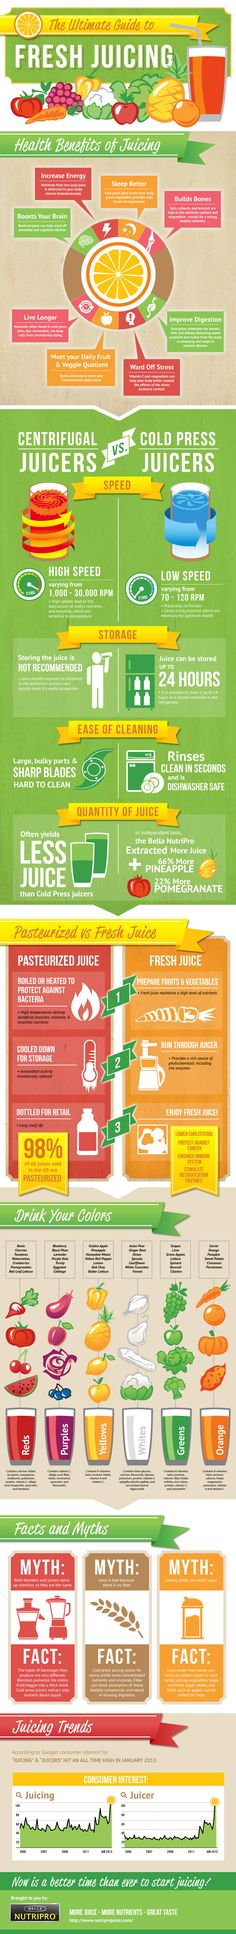 The Ultimate Guide to Juicing - Infographic - The Almost VeganThe Almost Vegan